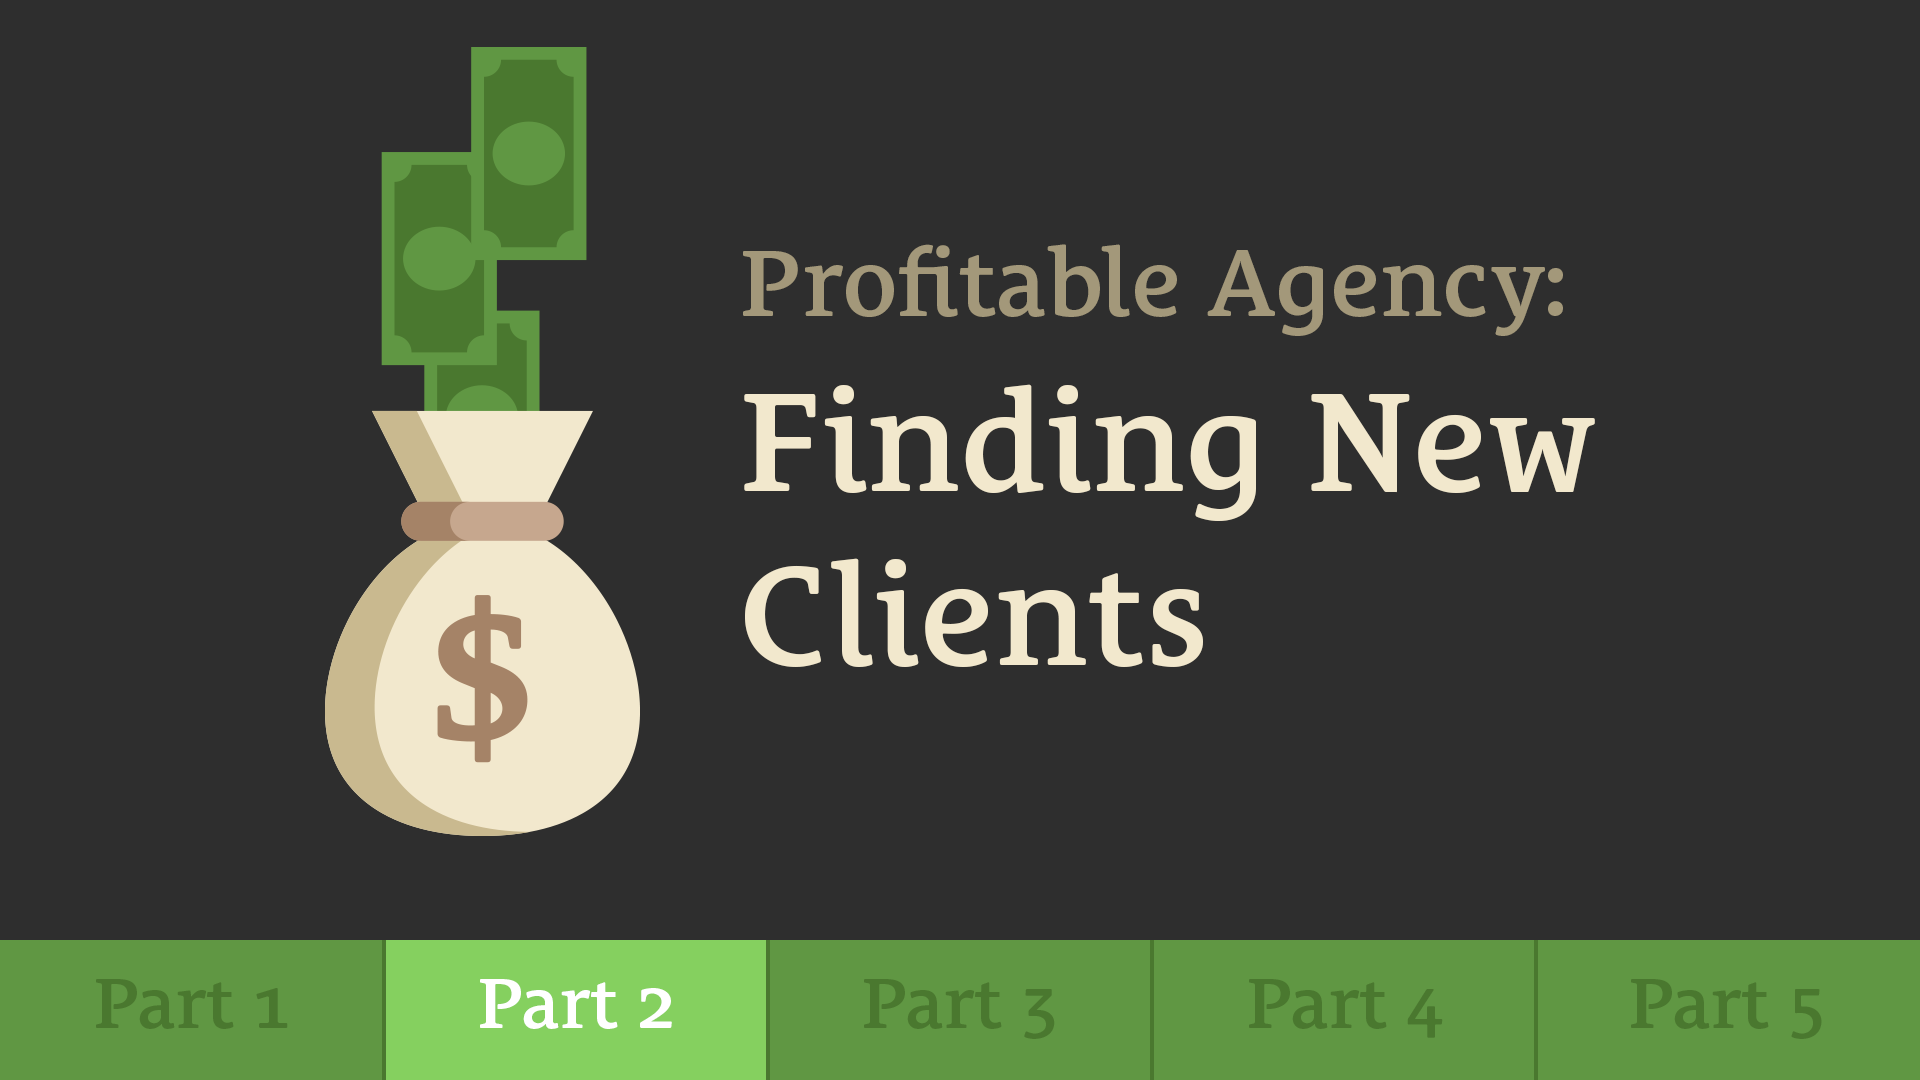 497: Build a Profitable Agency - Part 2: Finding New Clients